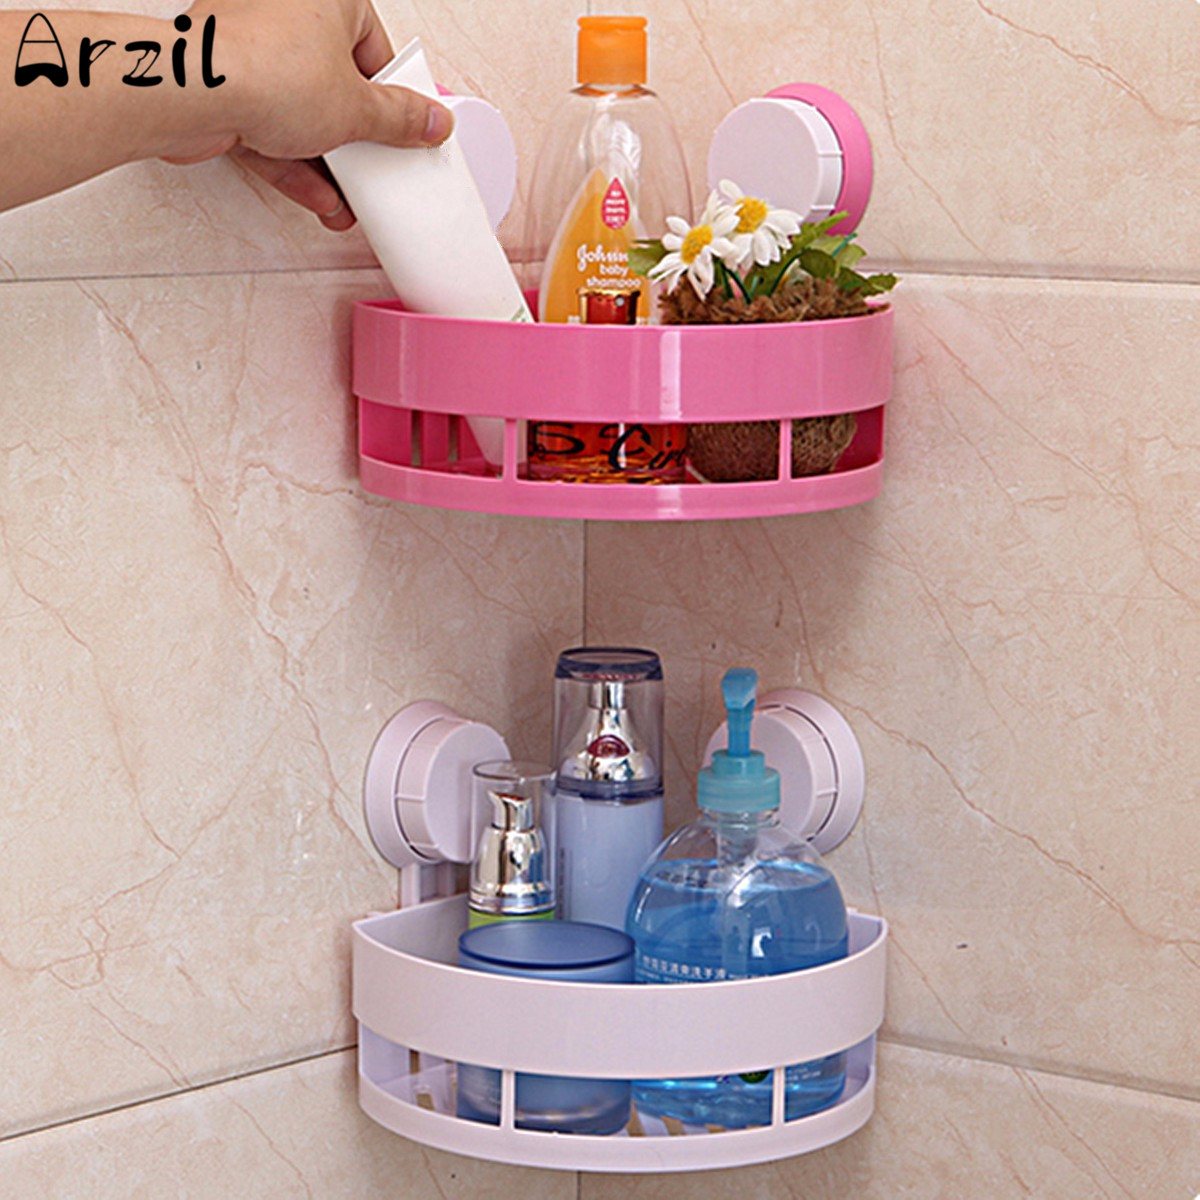 Plastic removable bath shelf wall mounted cosmetic holder storage - Plastic Wall Mounted Shampoo Storage Shelf Organizer Shower Sundries Soap Holder Suction Cups Household Storage Tools